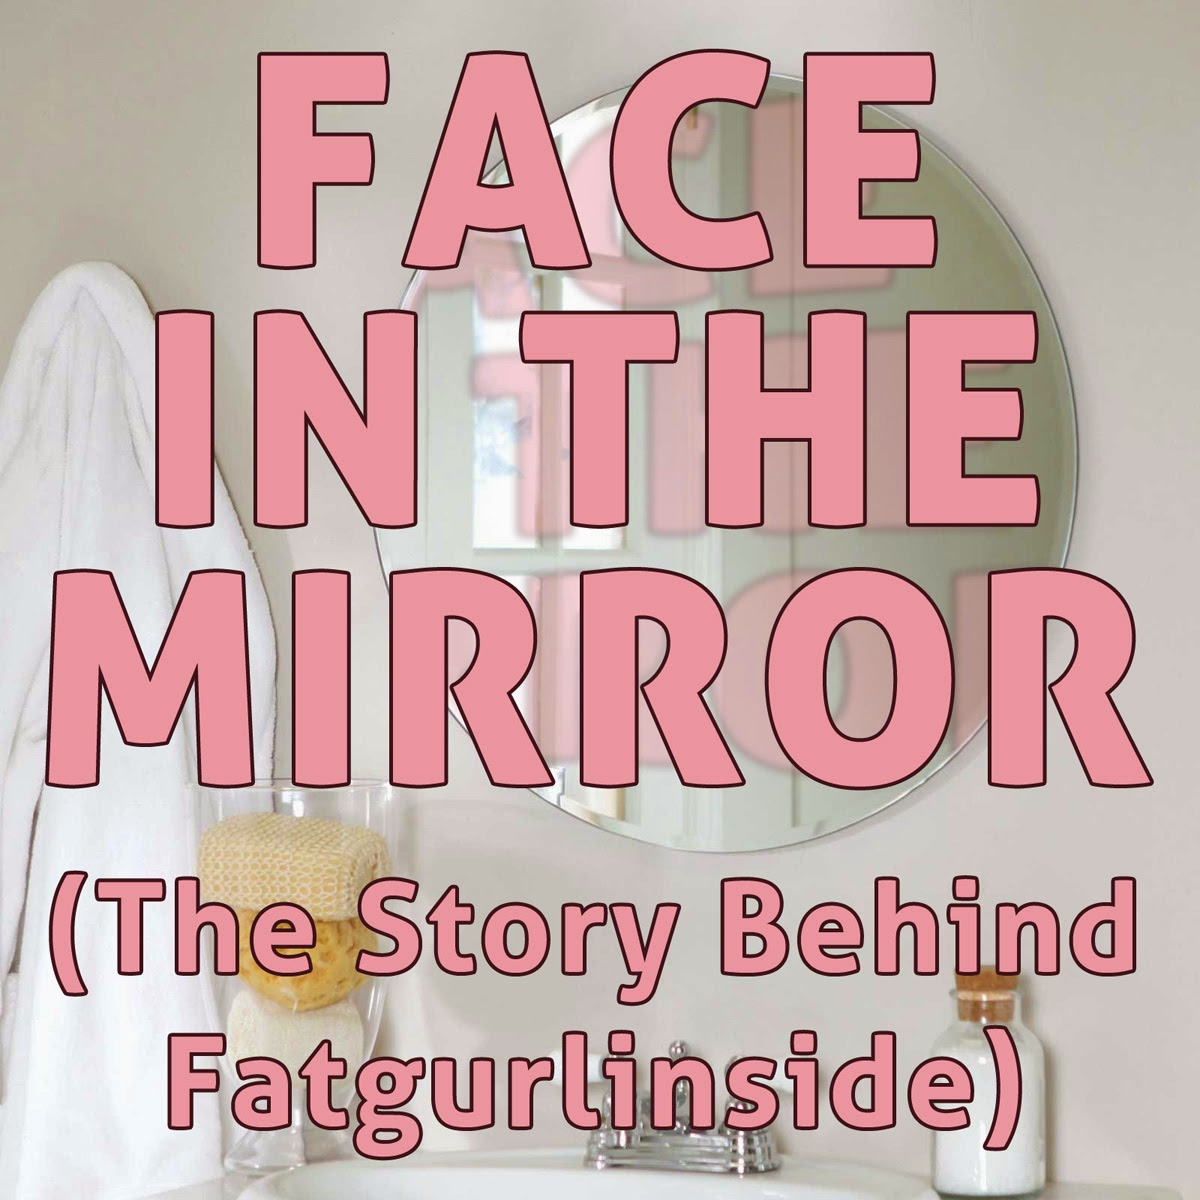 Face in the mirror: The story behind fatgurlinside